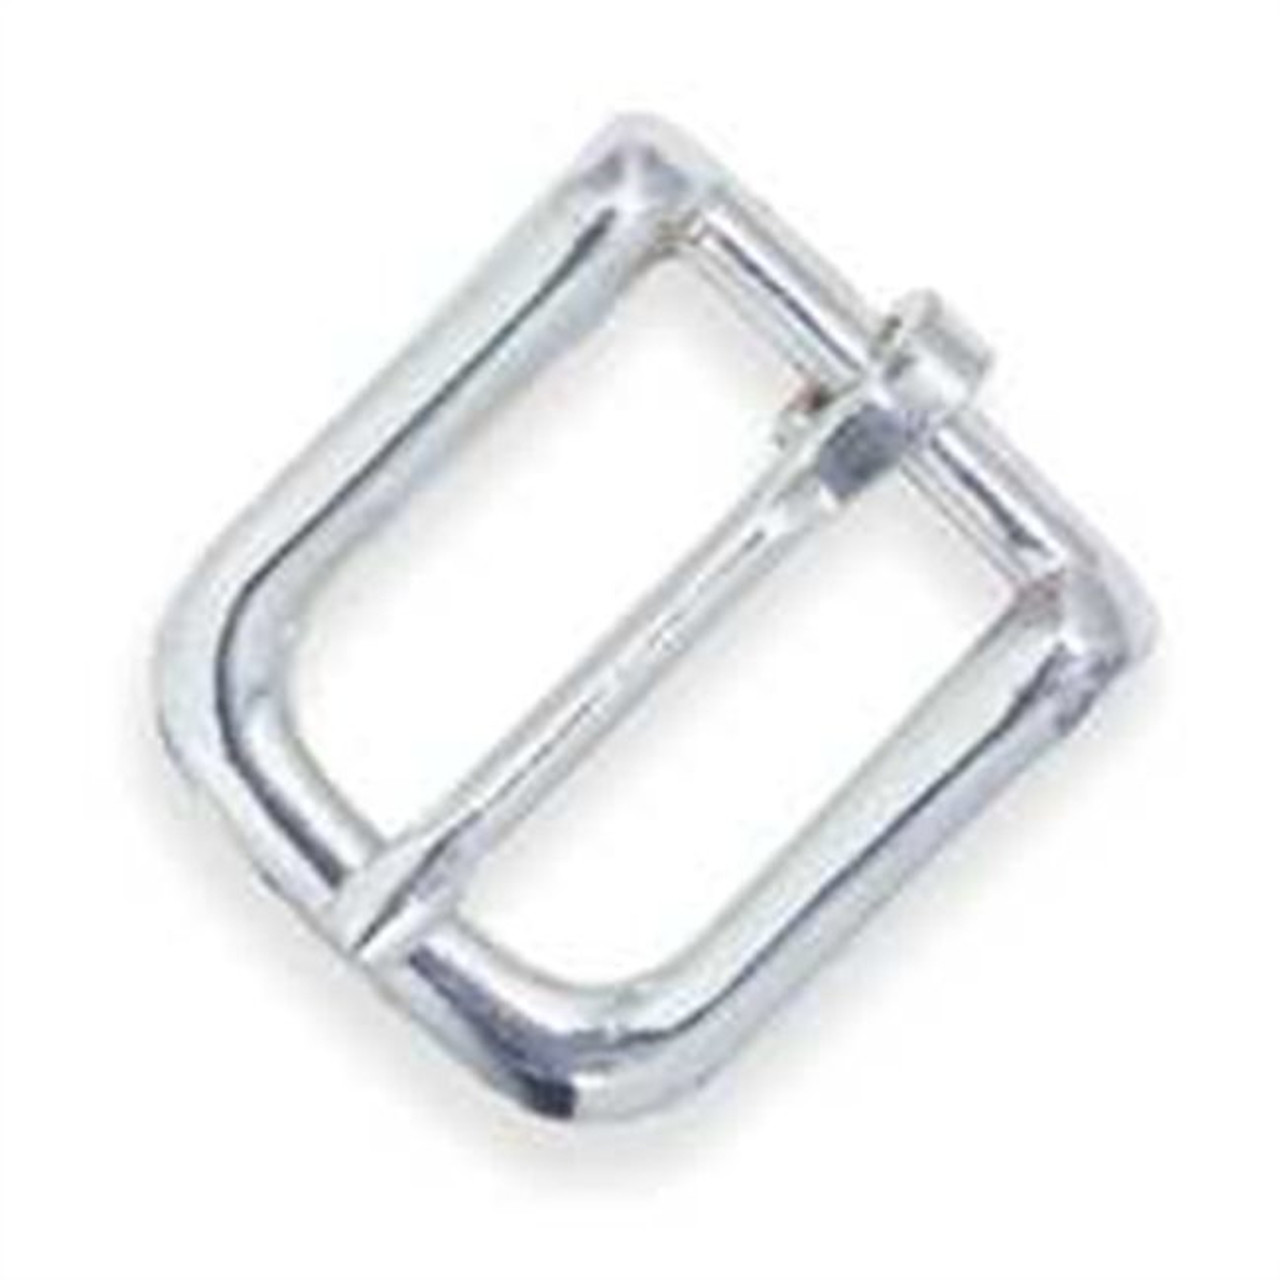 2 Sizes Oval Bridle Buckle Solid Brass//Nickel Plated